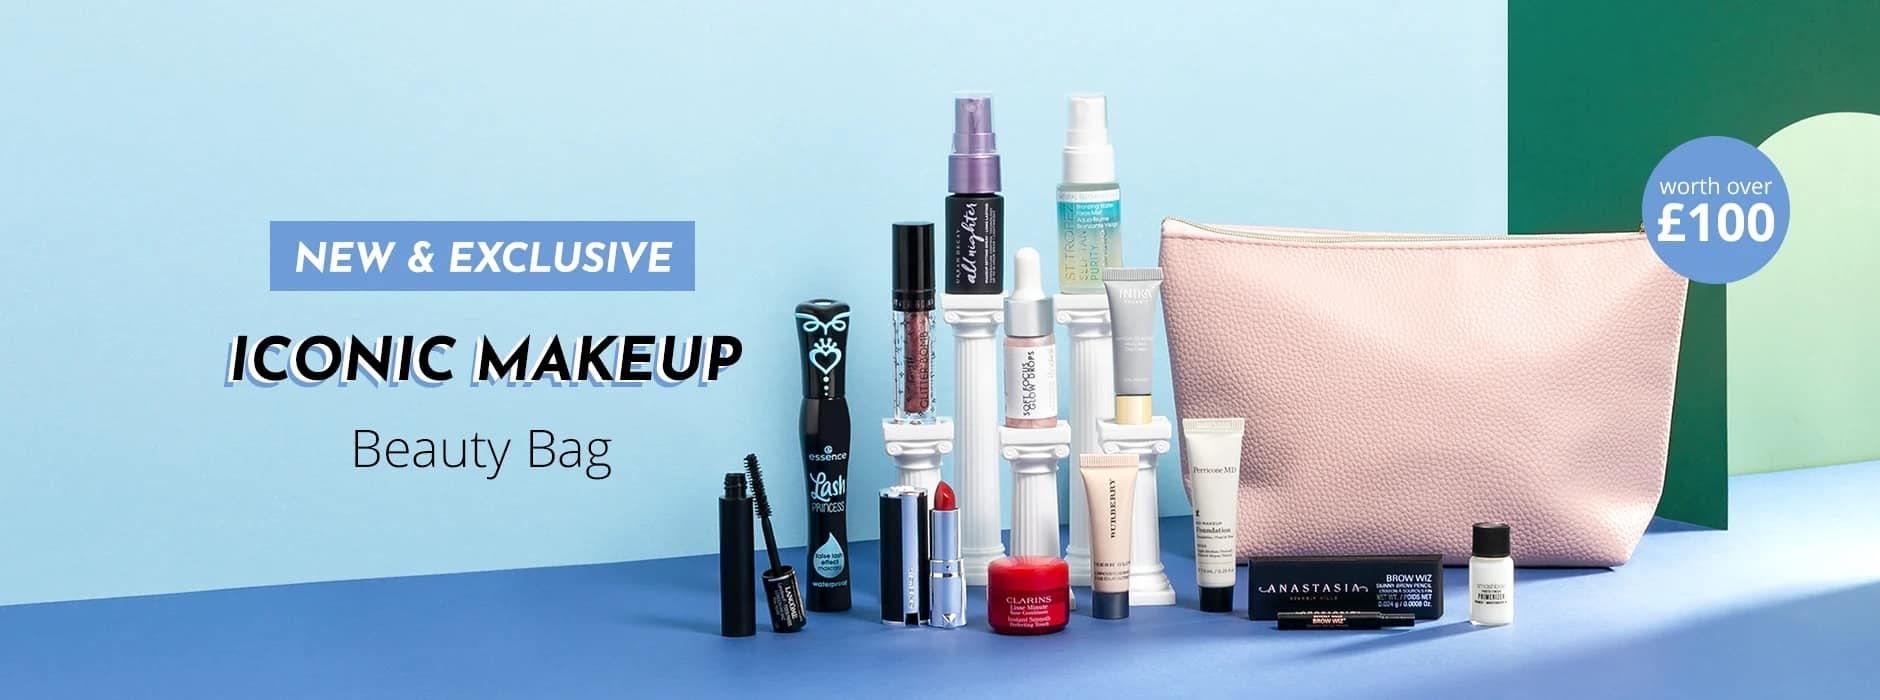 Feelunique Iconic Makeup Beauty Bag GWP June 2020